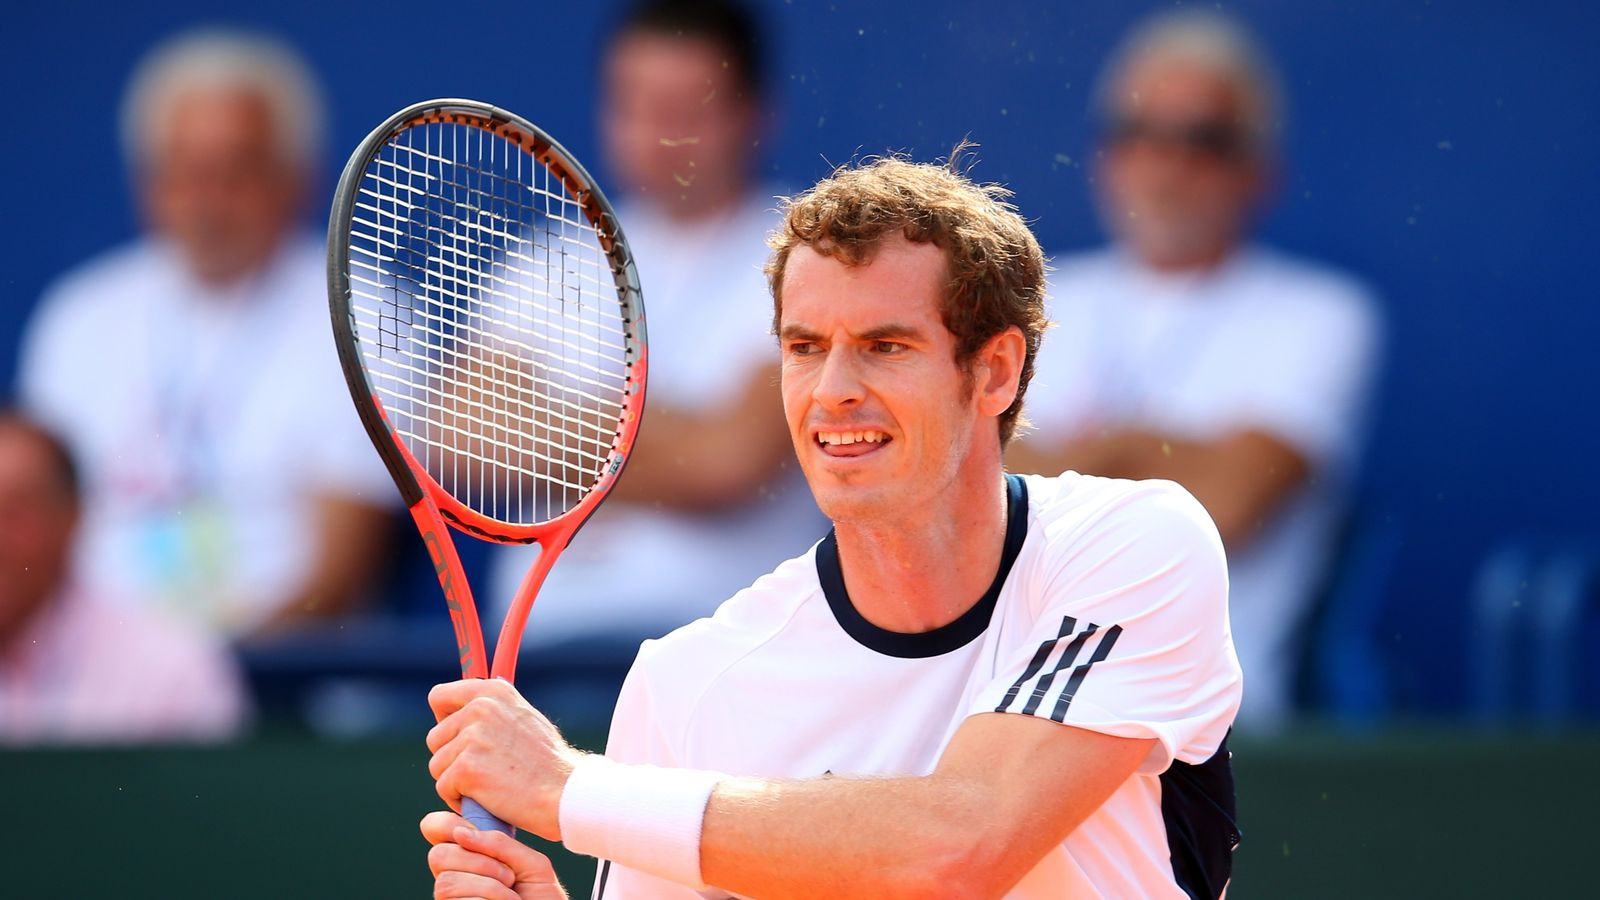 Davis Cup: Andy Murray makes winning return, GB all-square after day ...